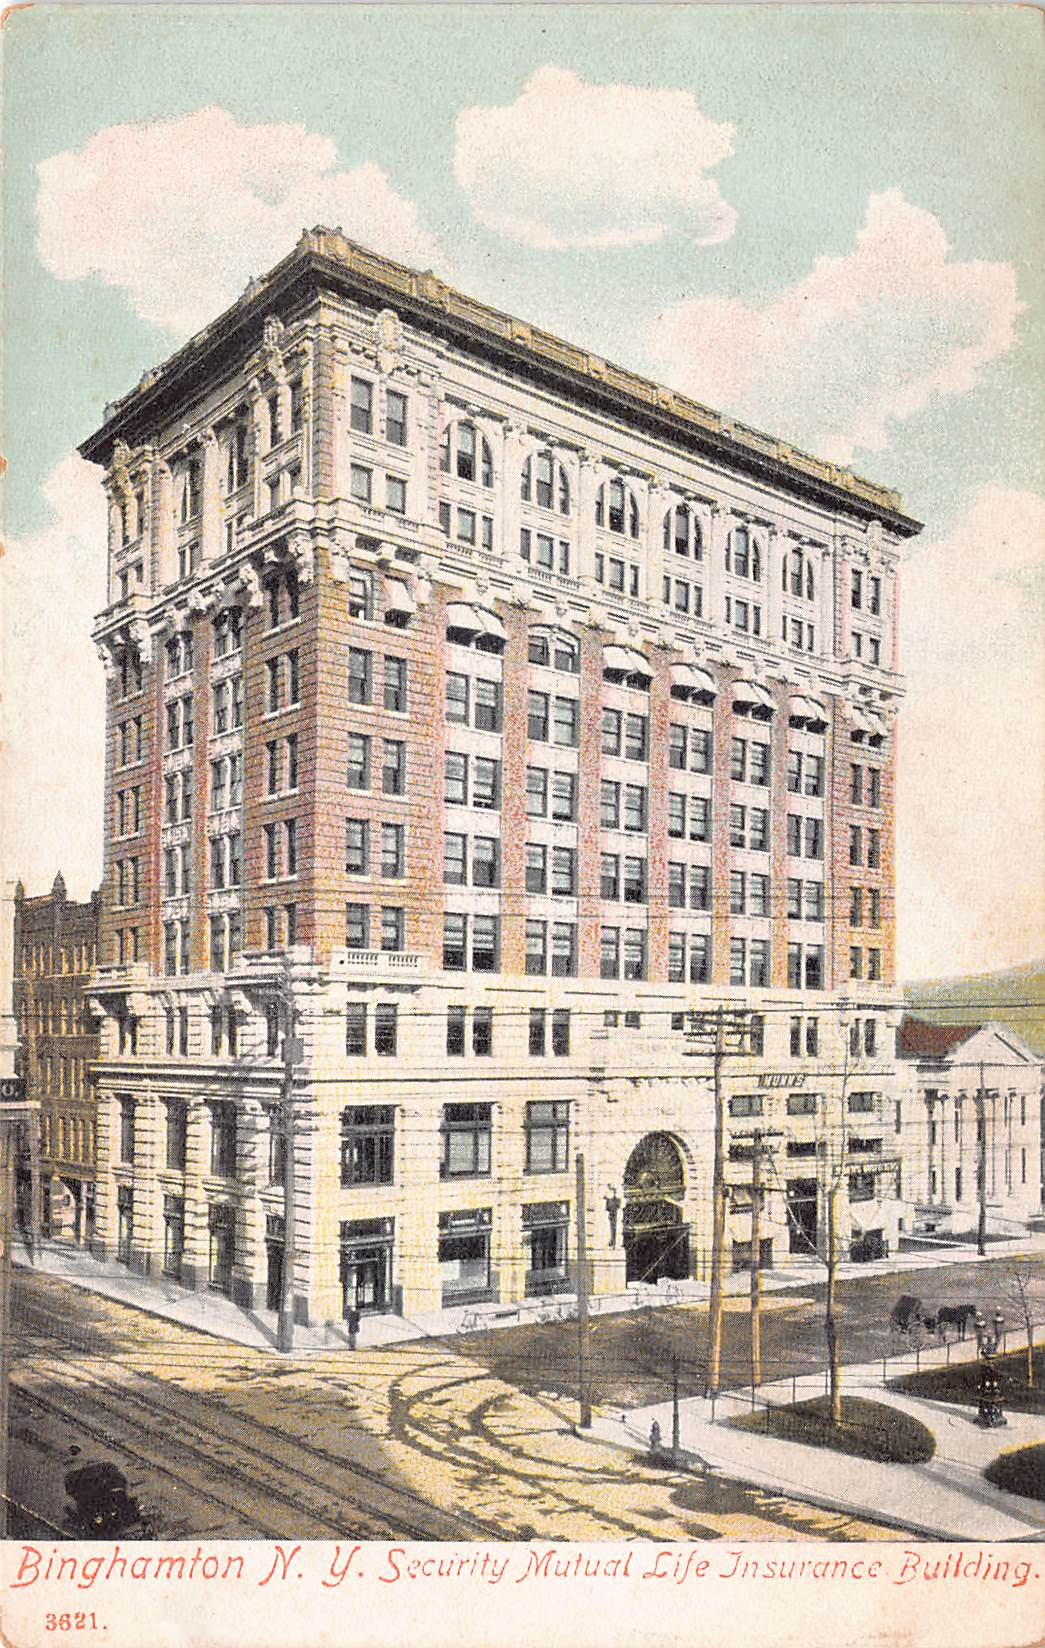 Security Mutual life Insurance Building, Binghamton, New York., early postcard, unused